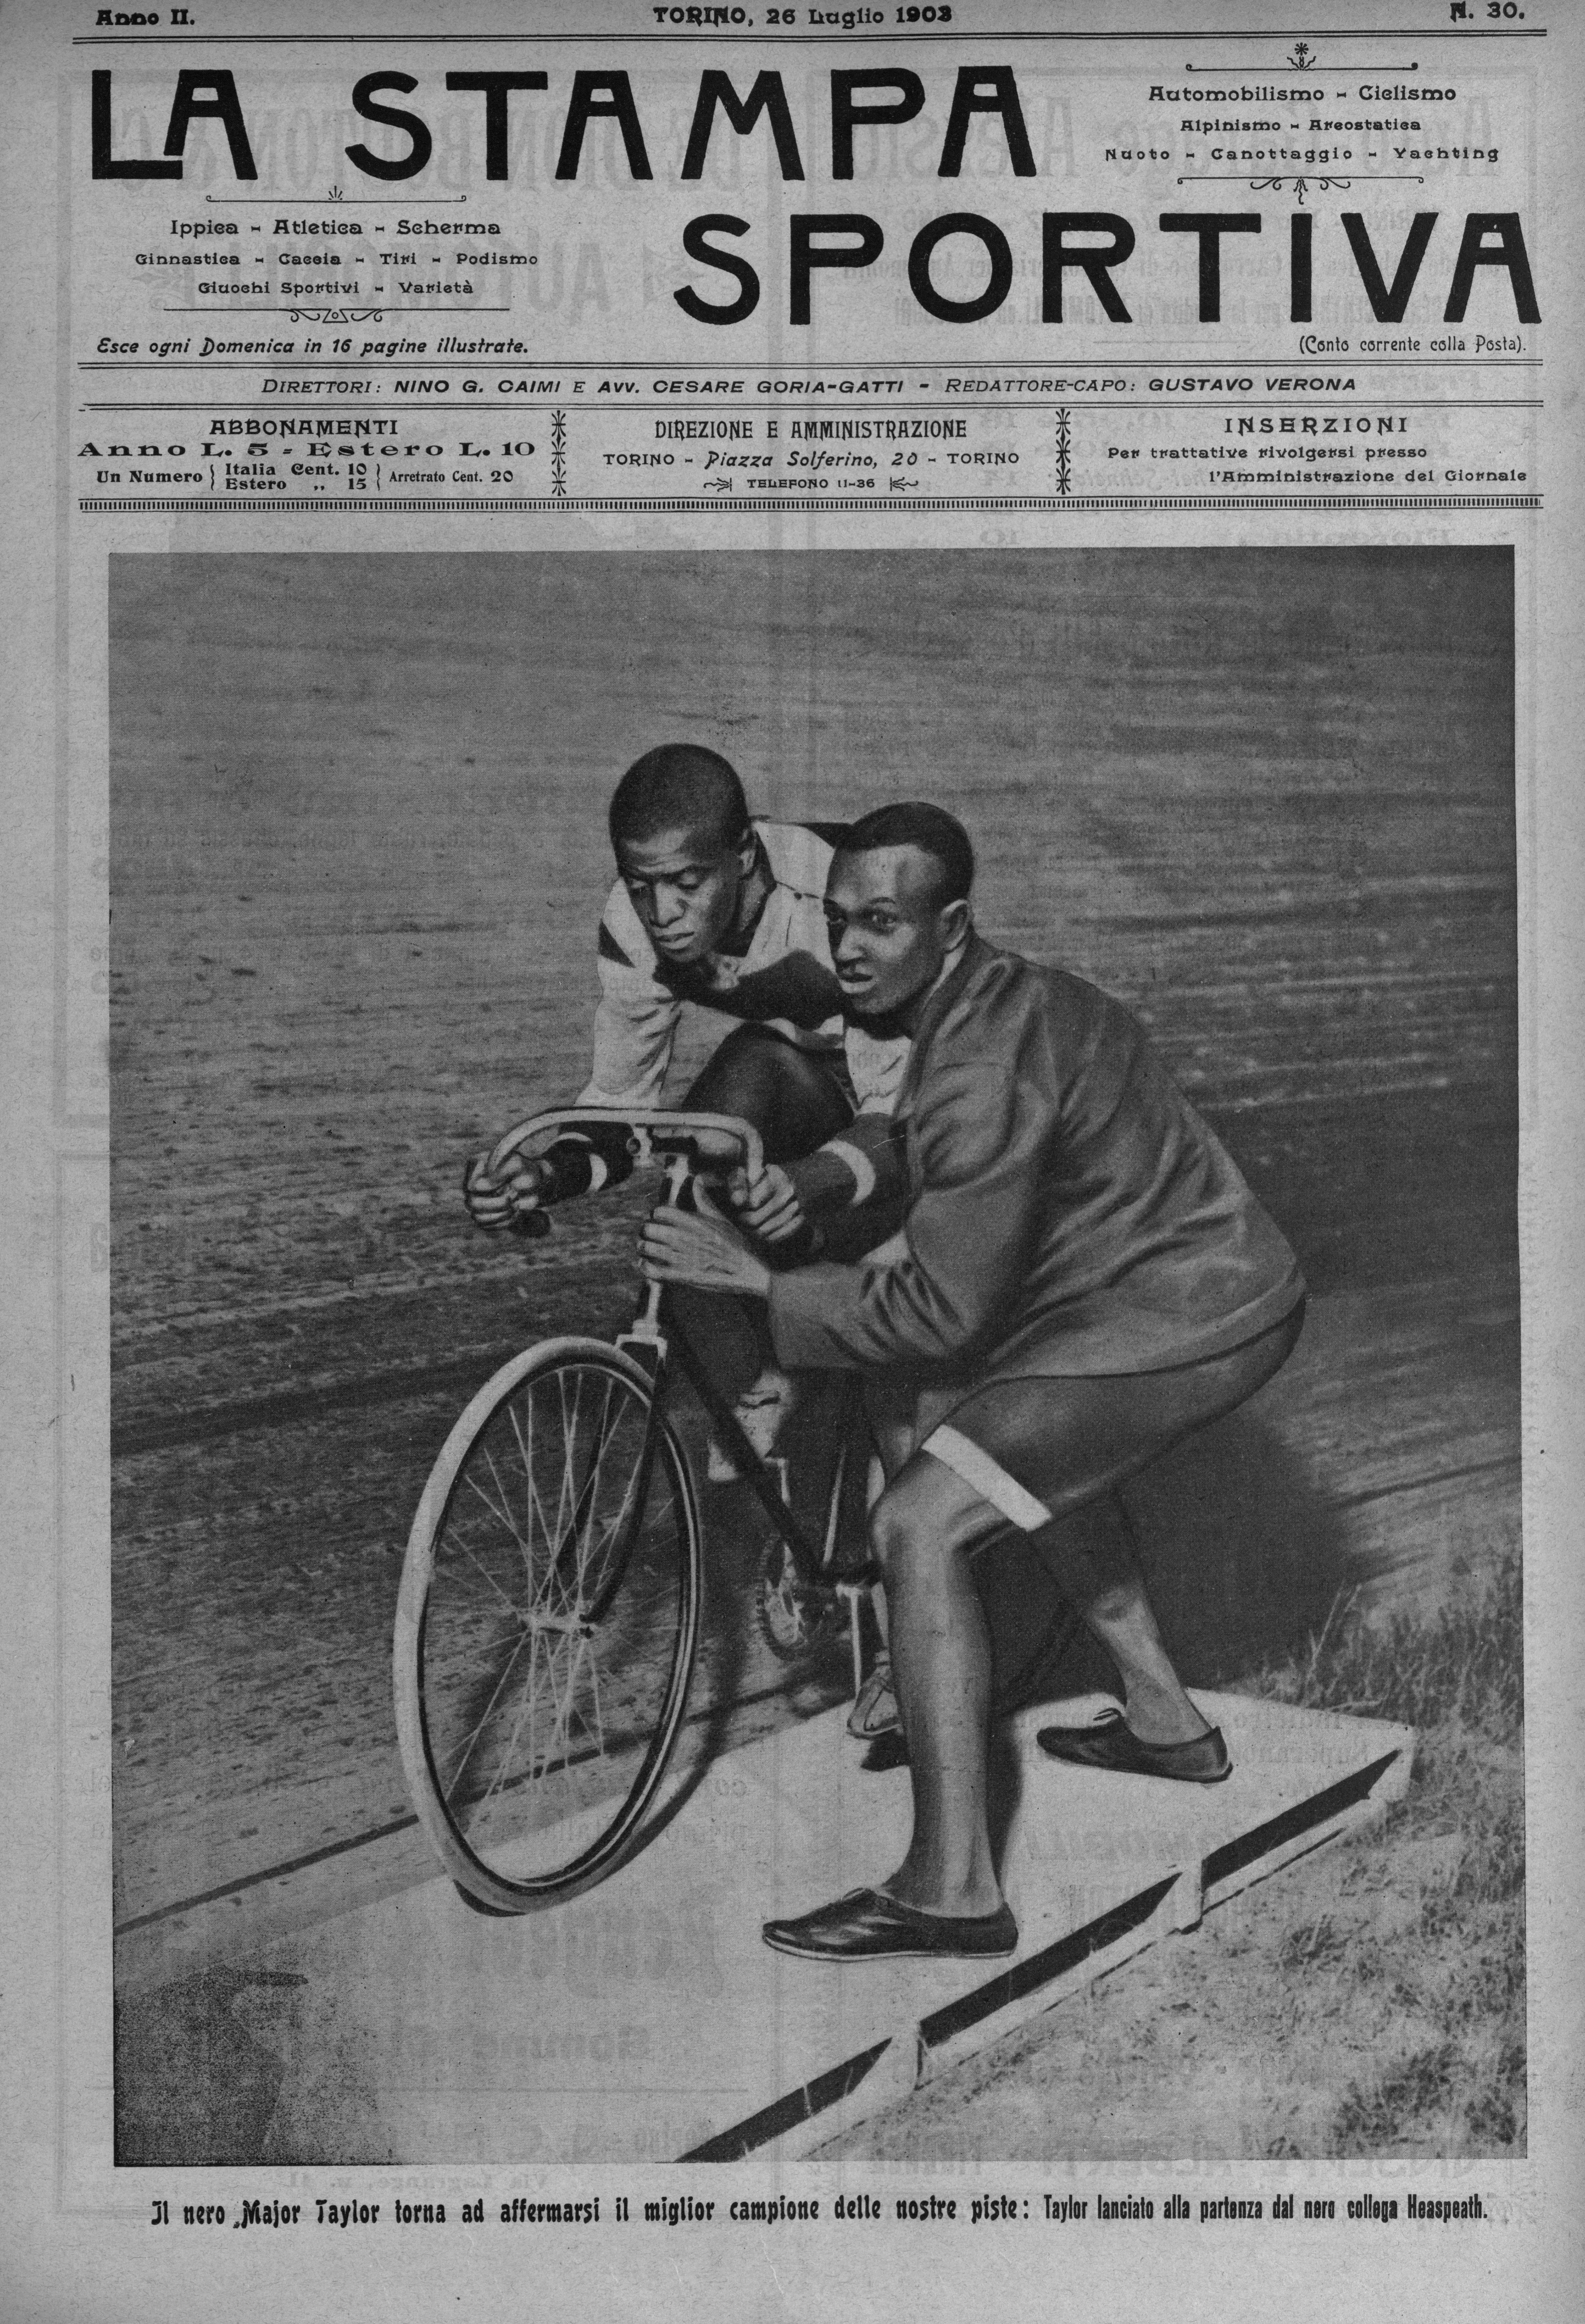 TaylorMajorTenuParHedspath-Photo-LaStampaSportivo1903No30.digibess.it.jpg